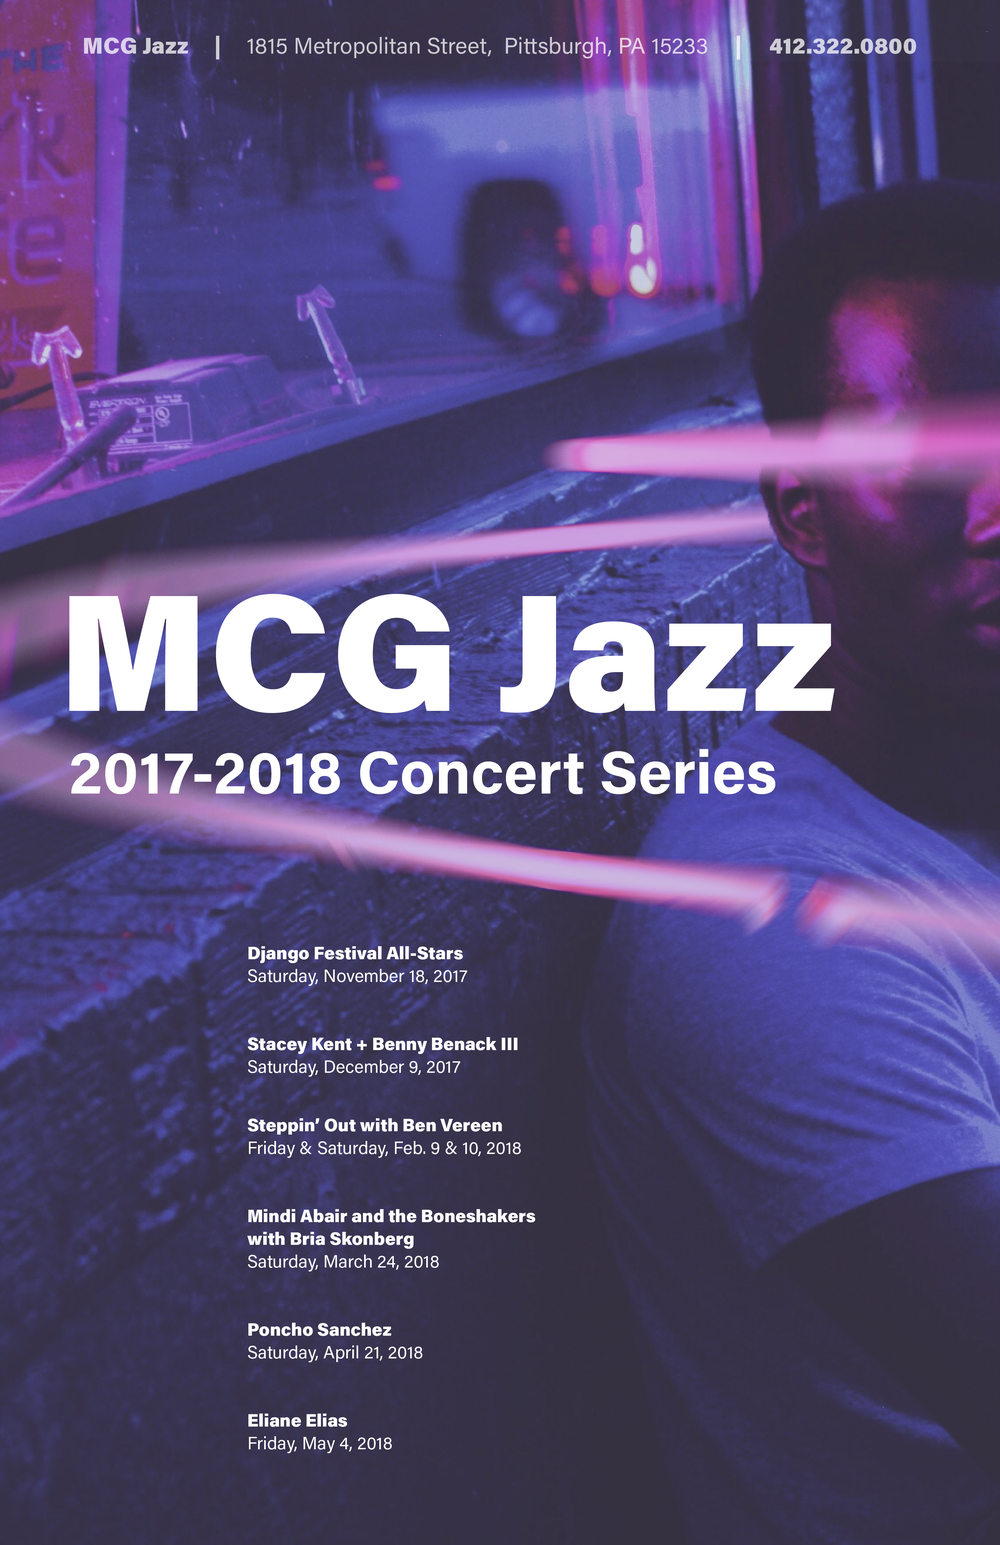 MCGJazzImage2 [Recovered]2-09.png